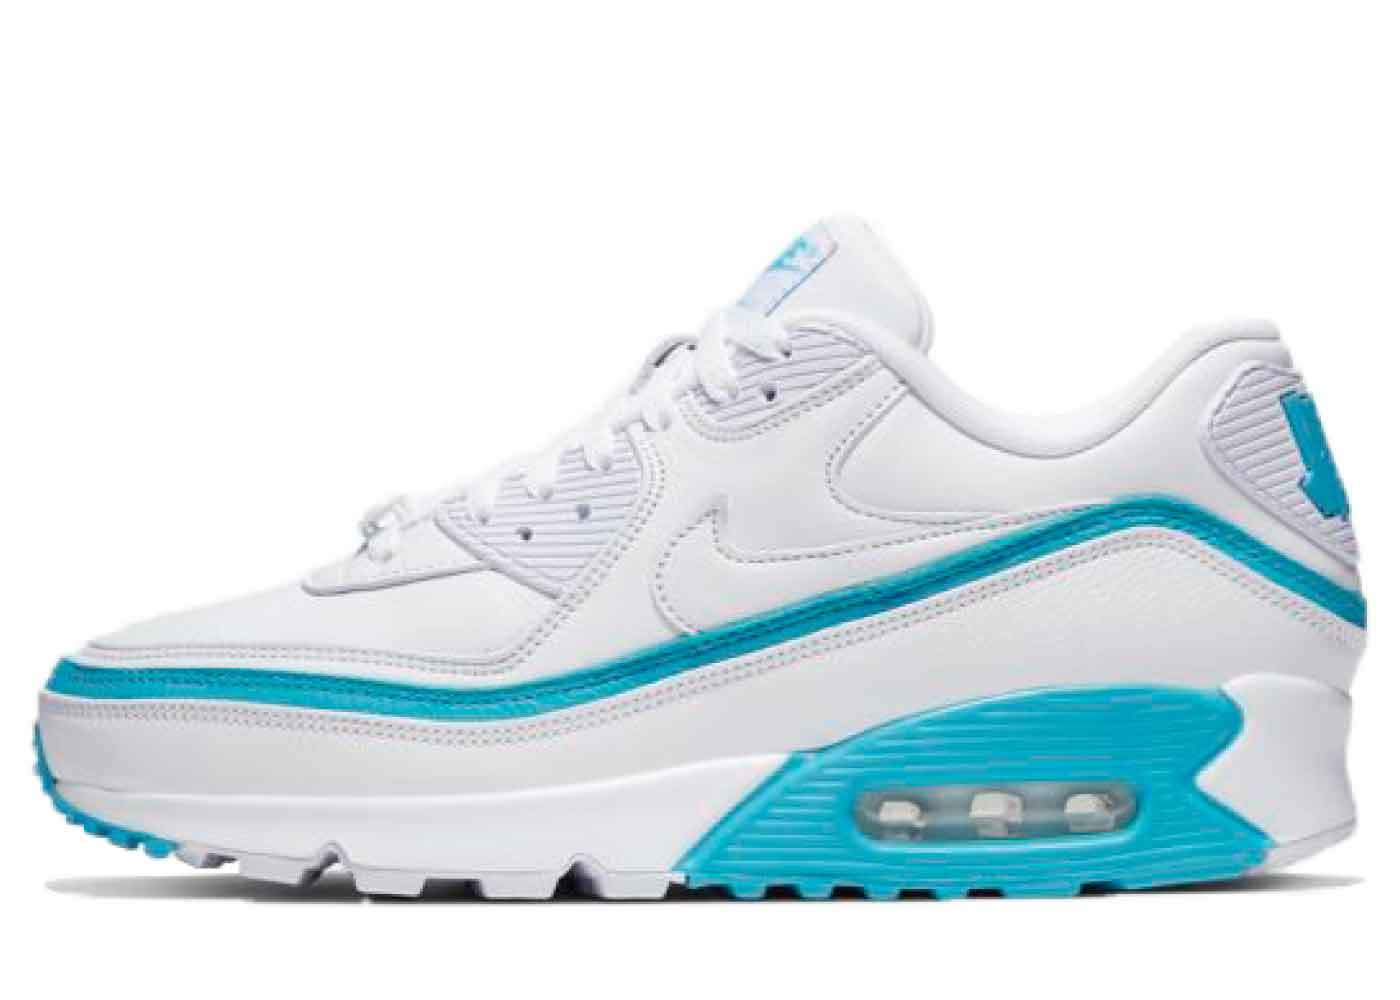 Nike Air Max 90 Undefeated White Blue Furyの写真